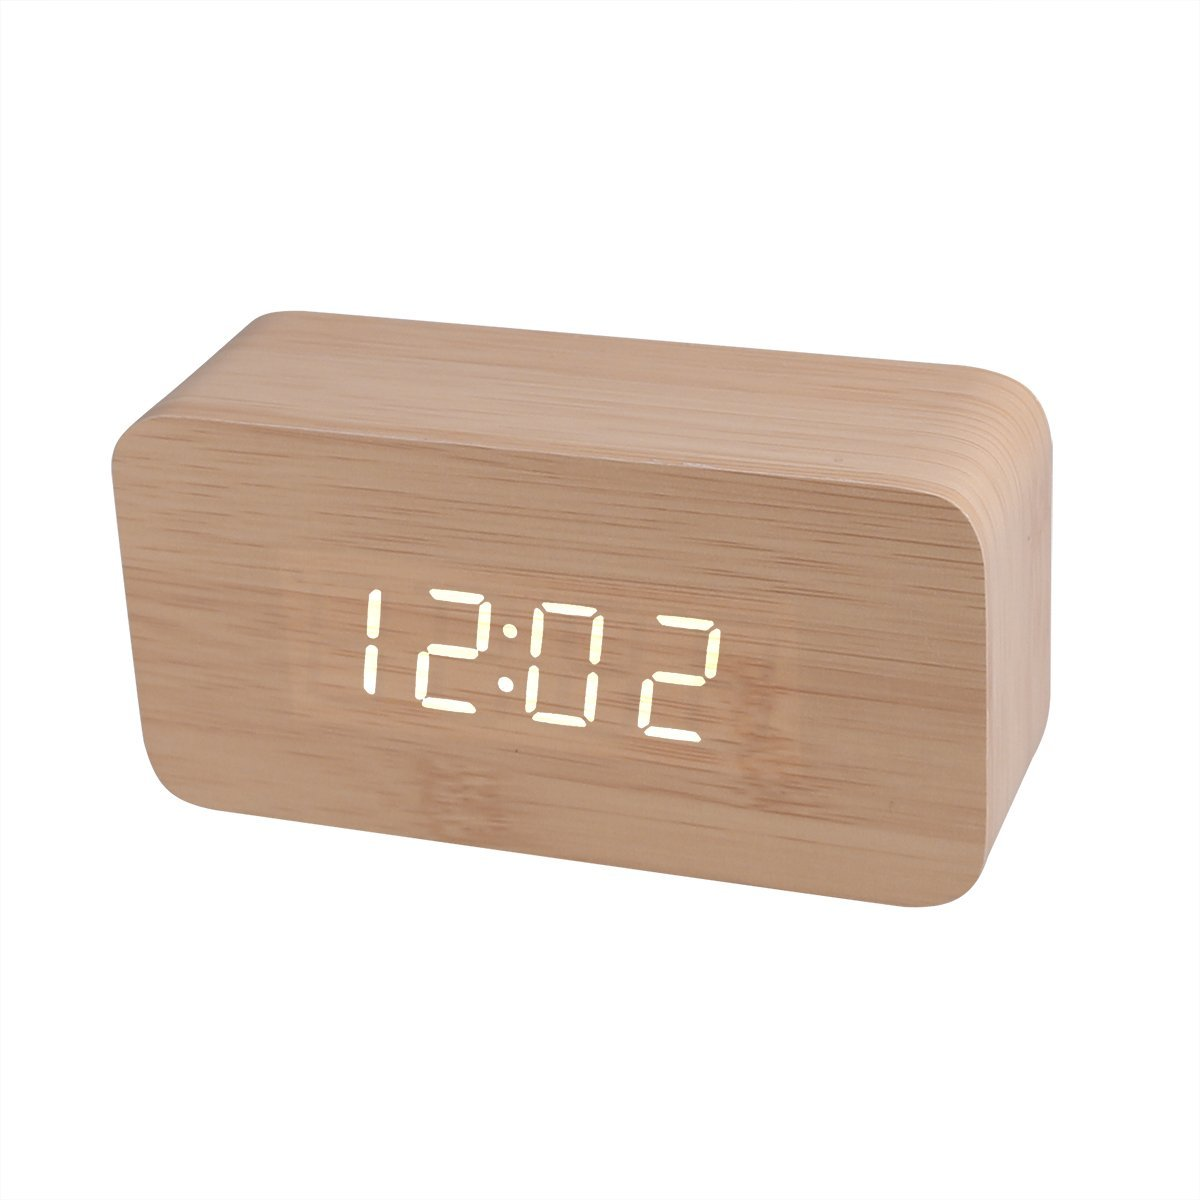 Wood Cuboid Digital Clock Alarm Thermometer Temperature Function Clap On Sound Control Clock Bamboo case